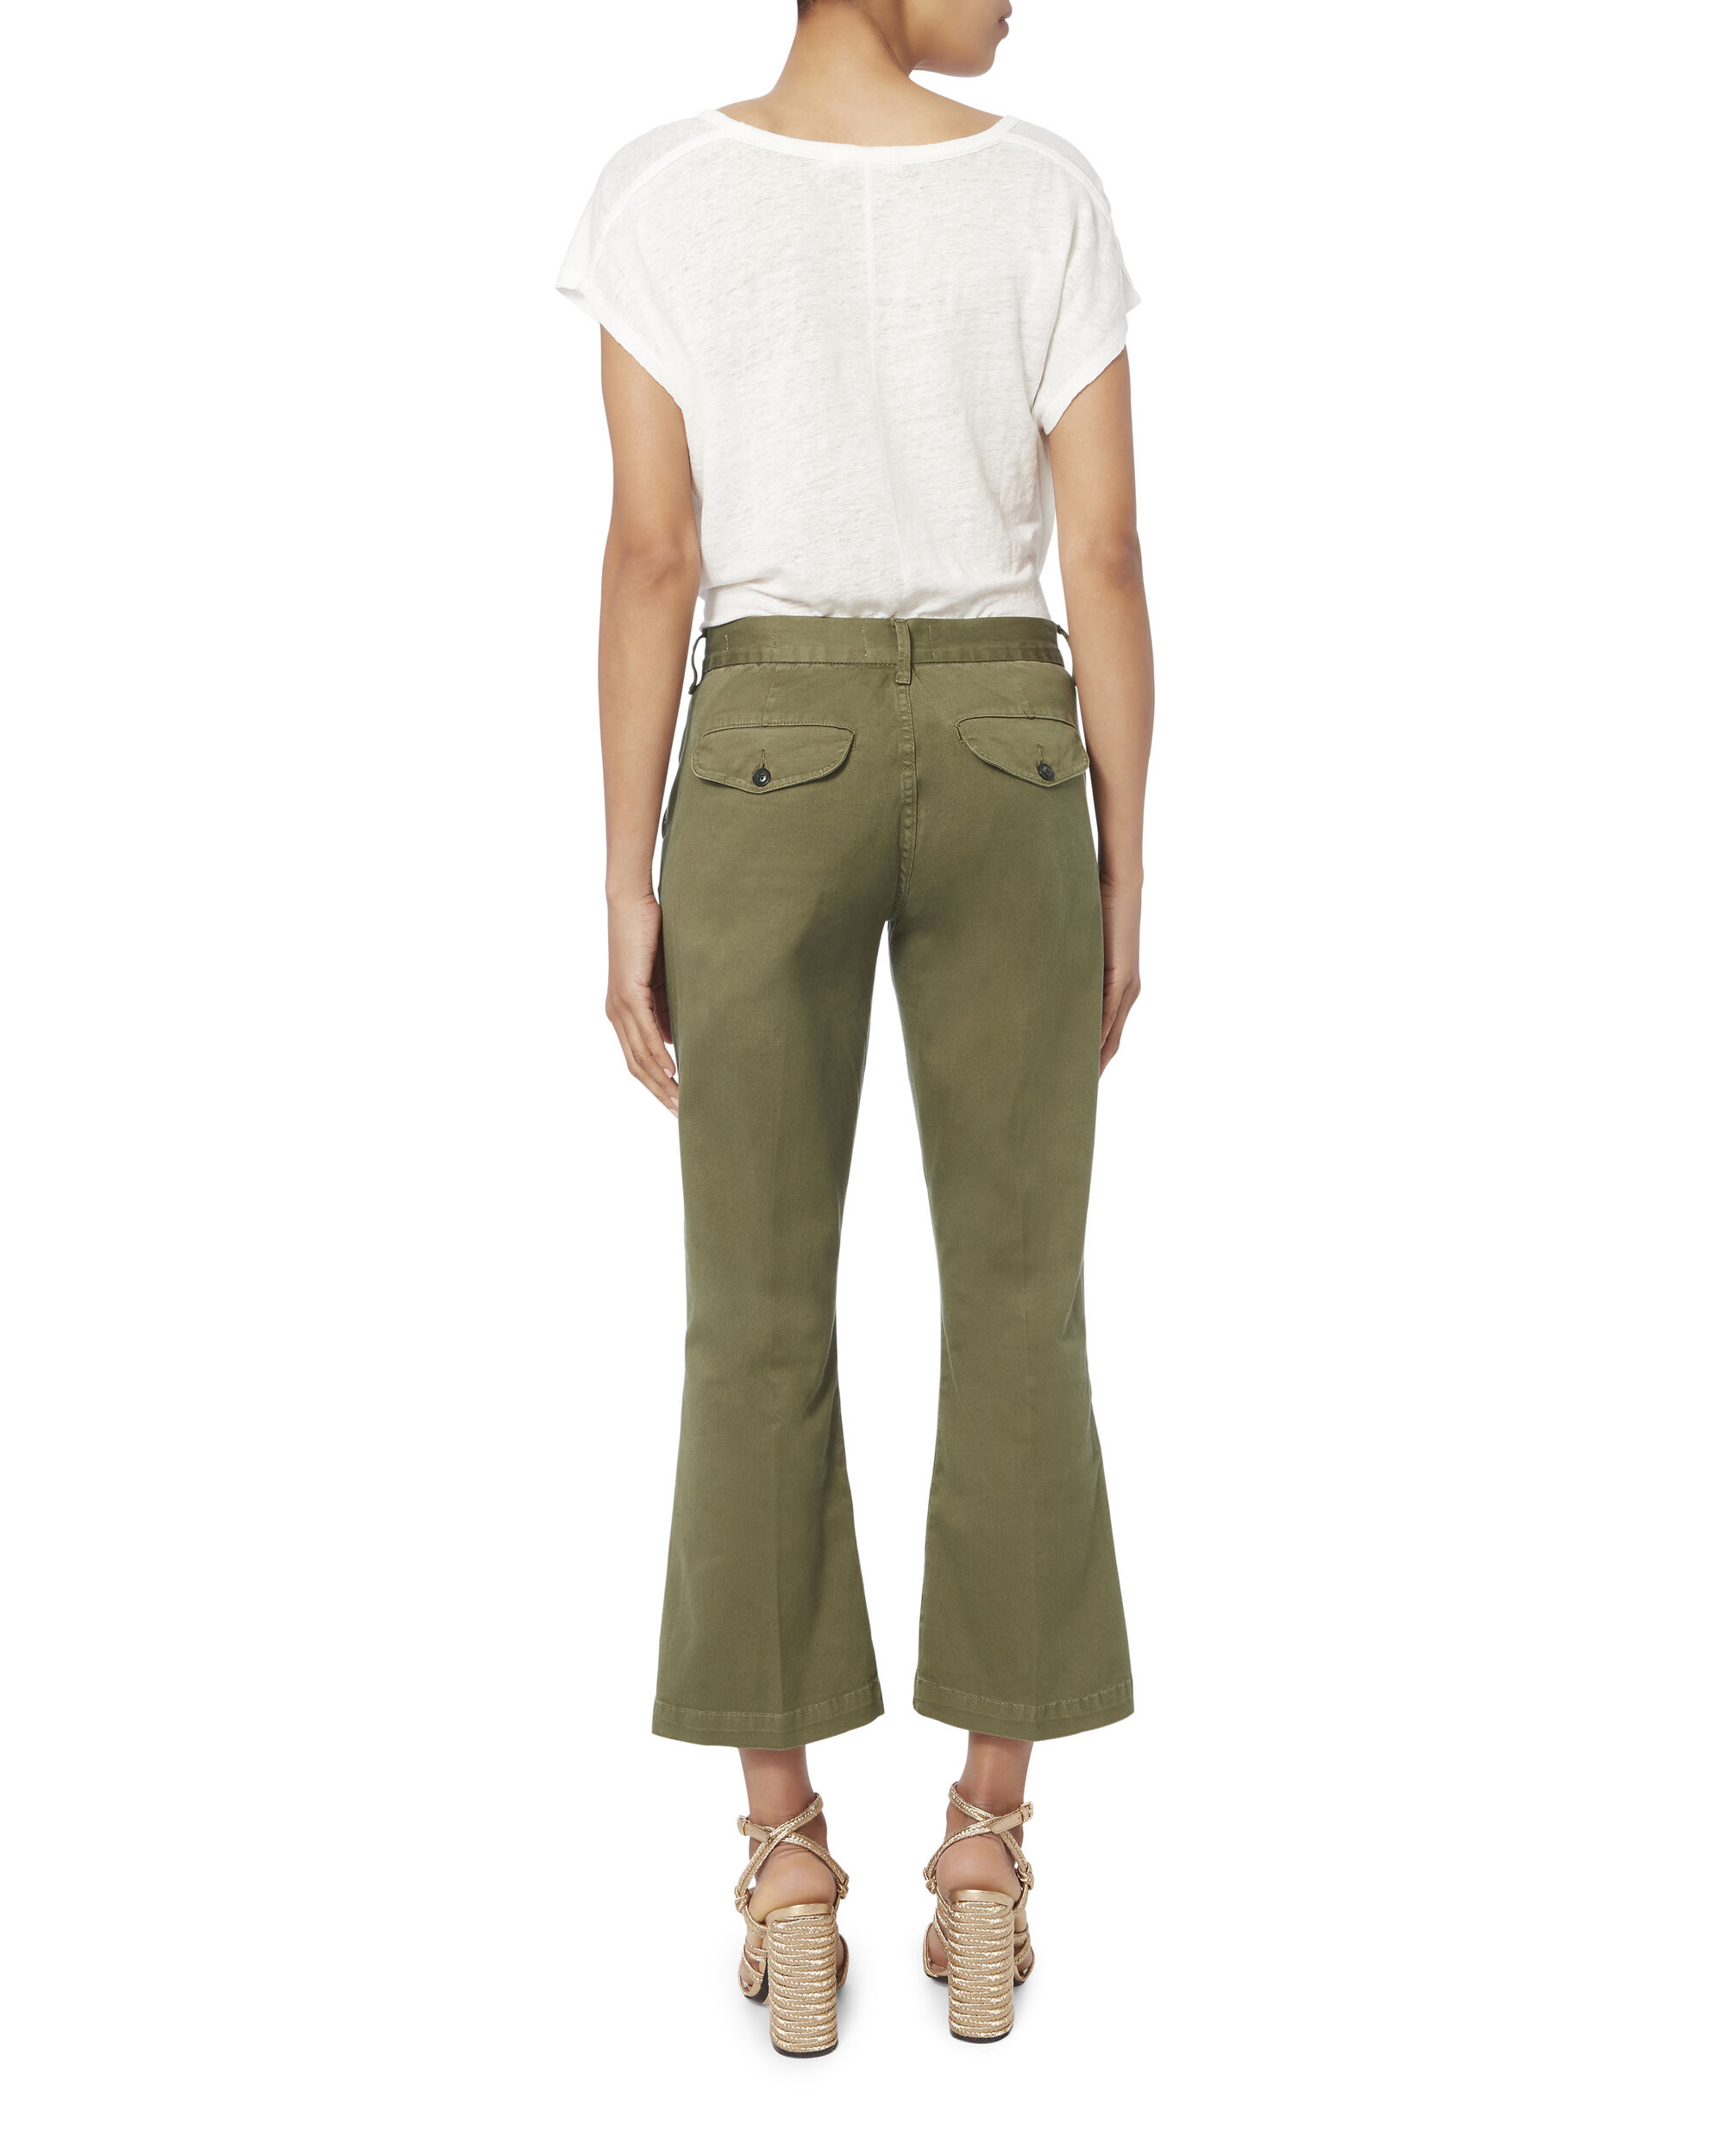 Le Crop Mini Boot Chino Pants, OLIVE/ARMY, hi-res